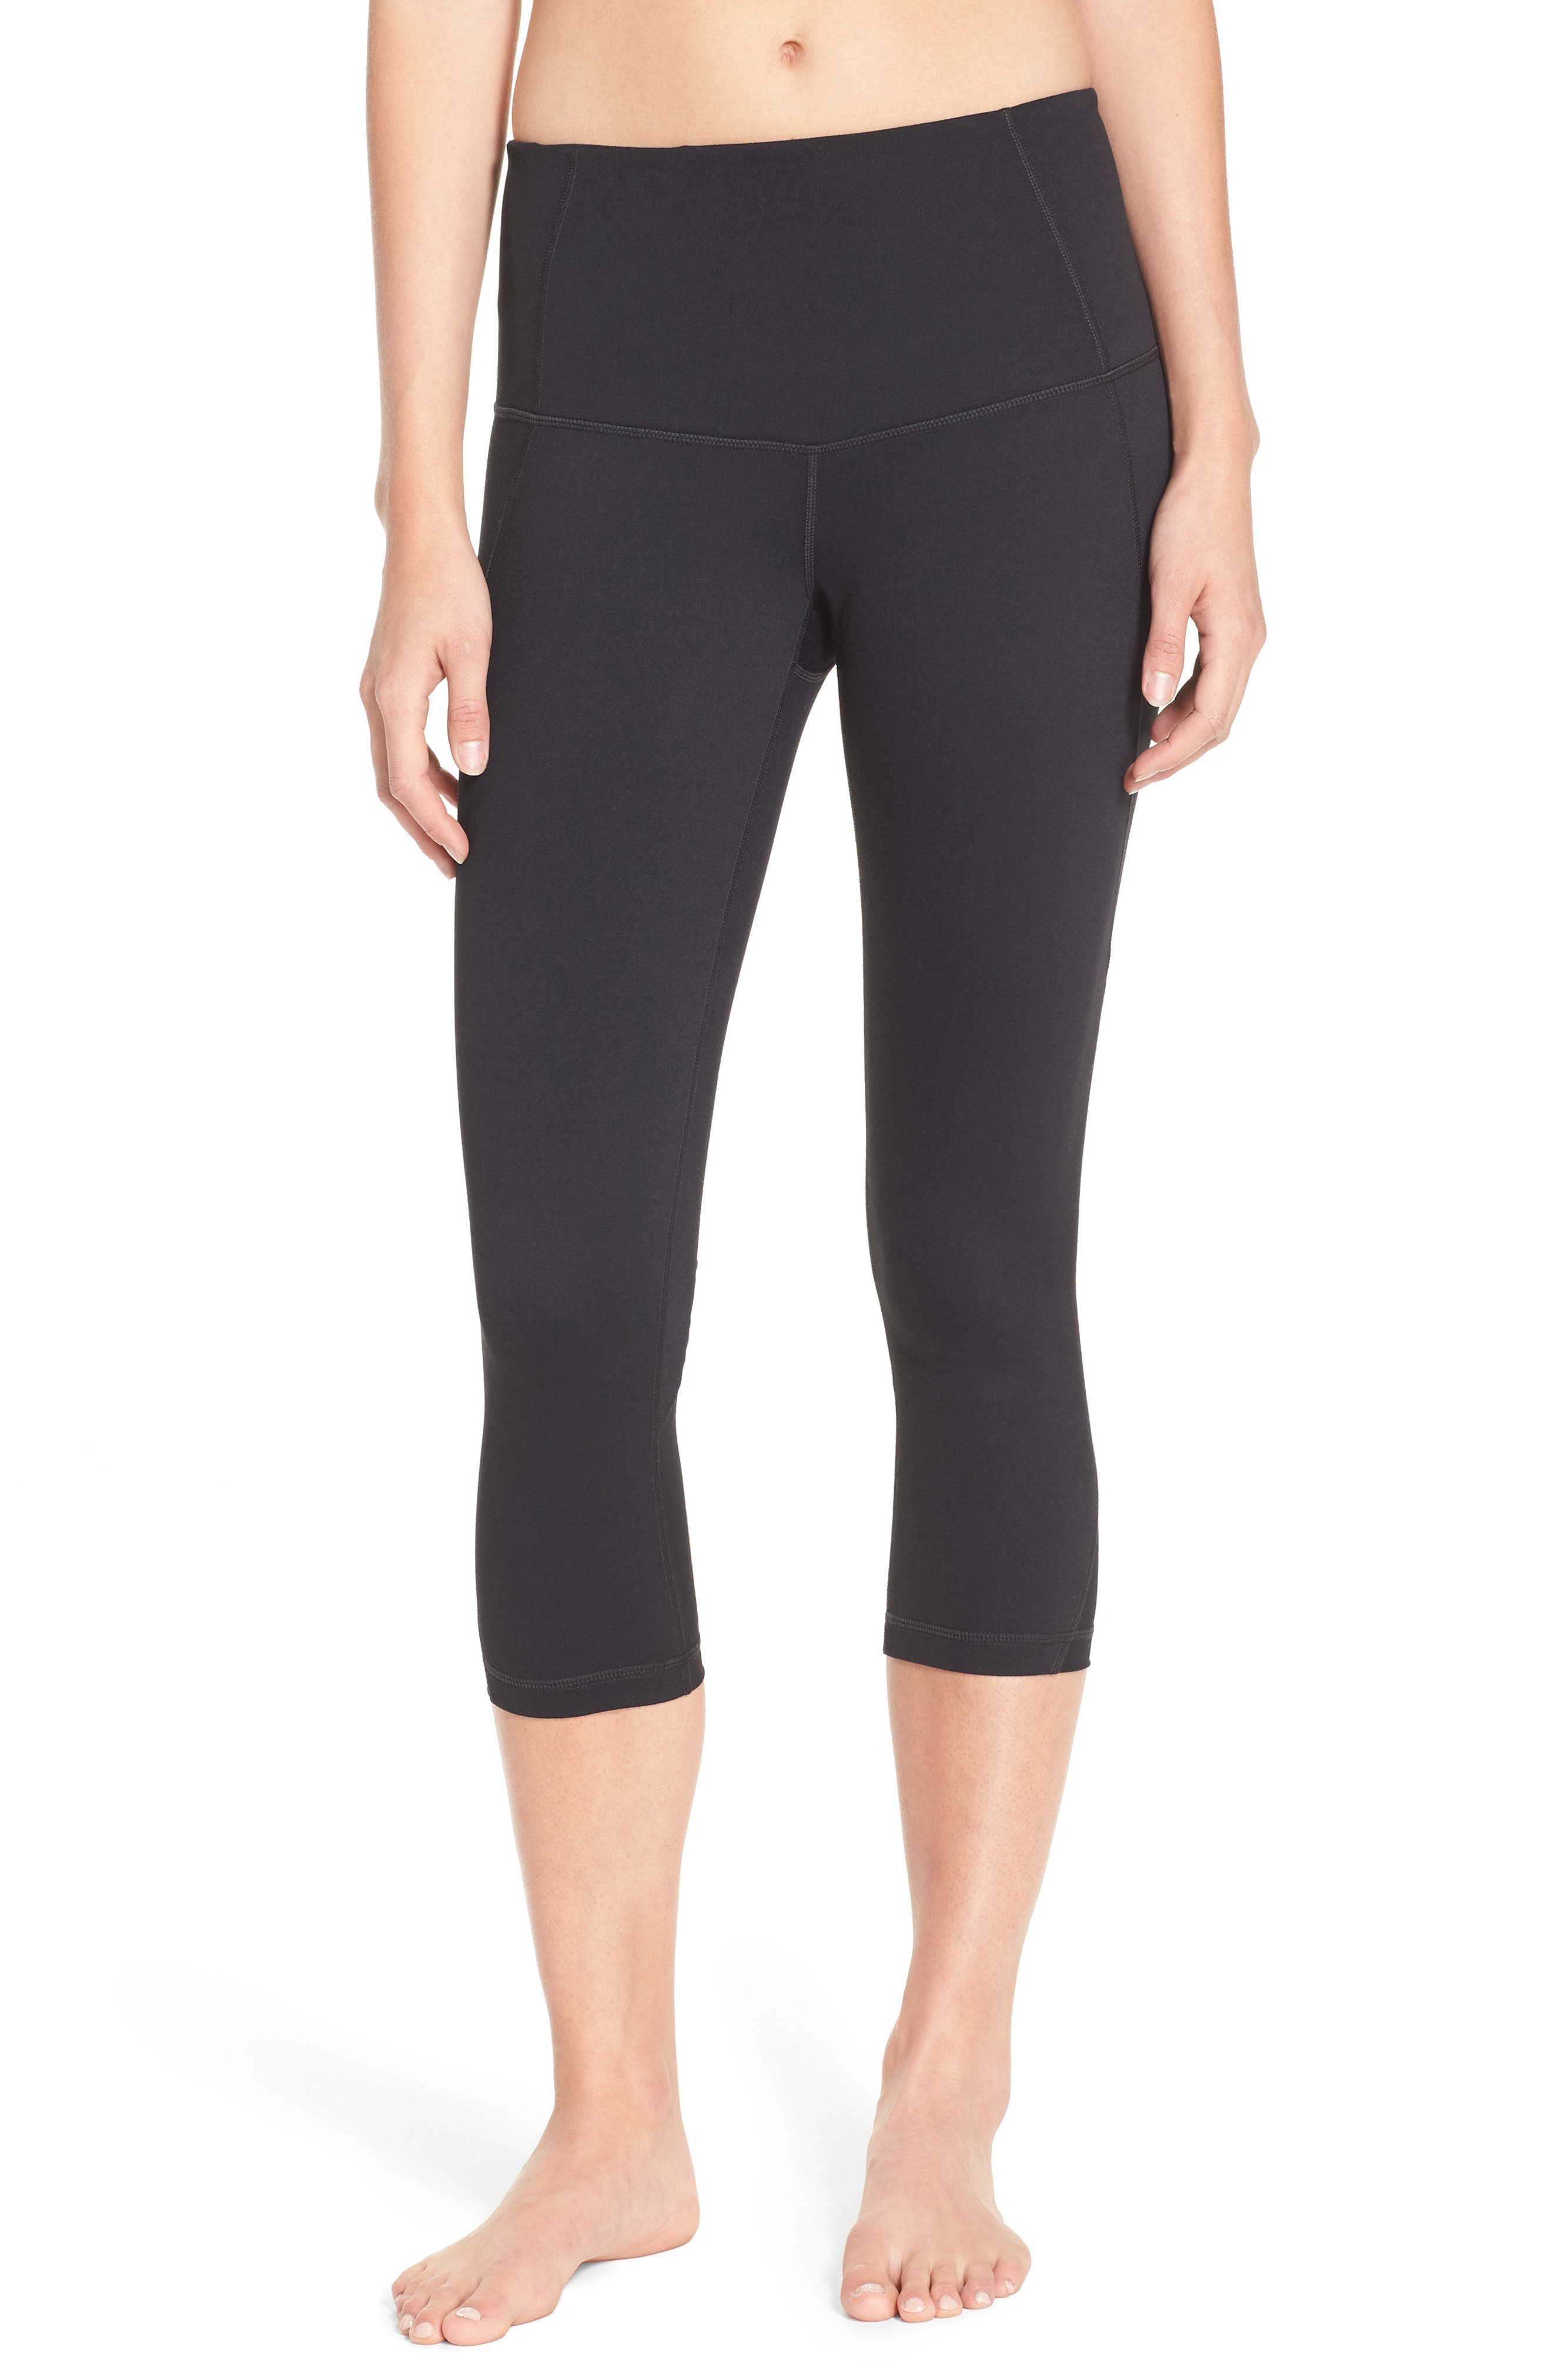 Zella 'Hatha' High Waist Crop Leggings